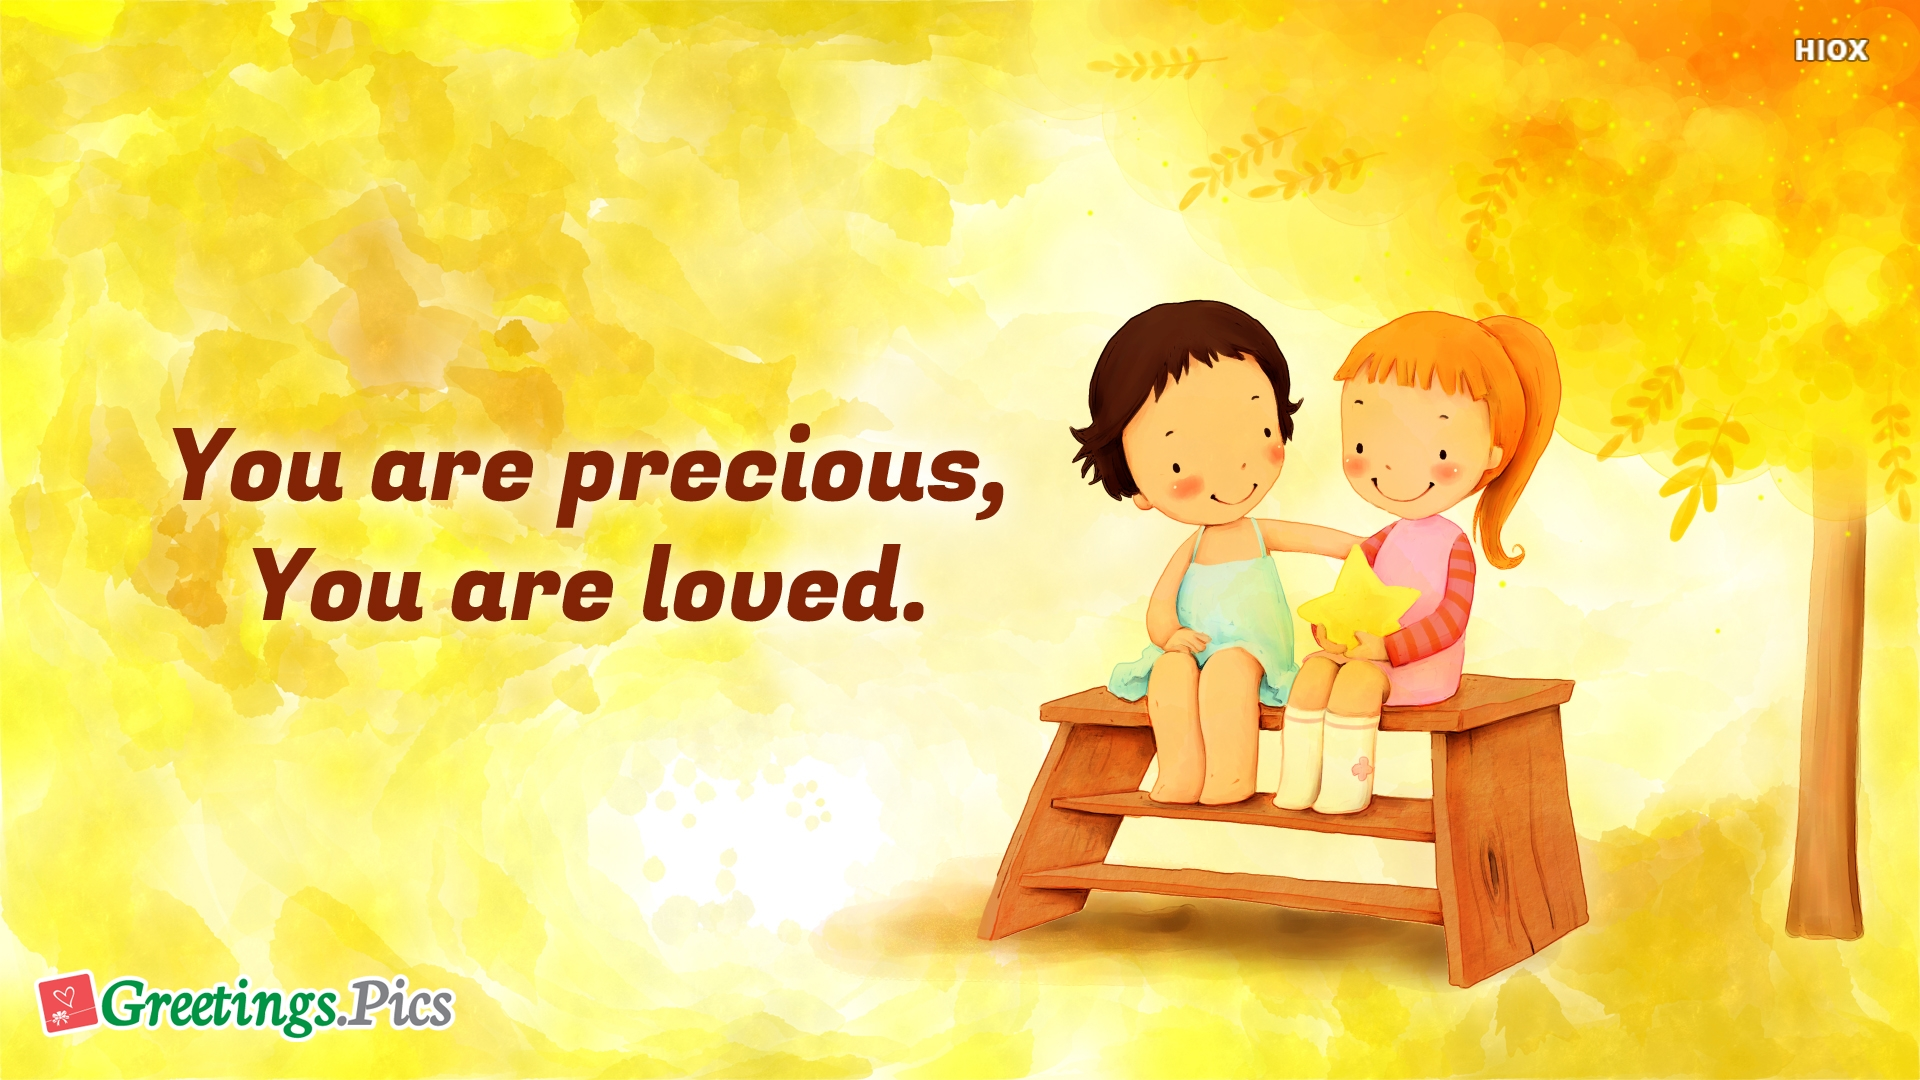 You Are Precious, You Are Loved.